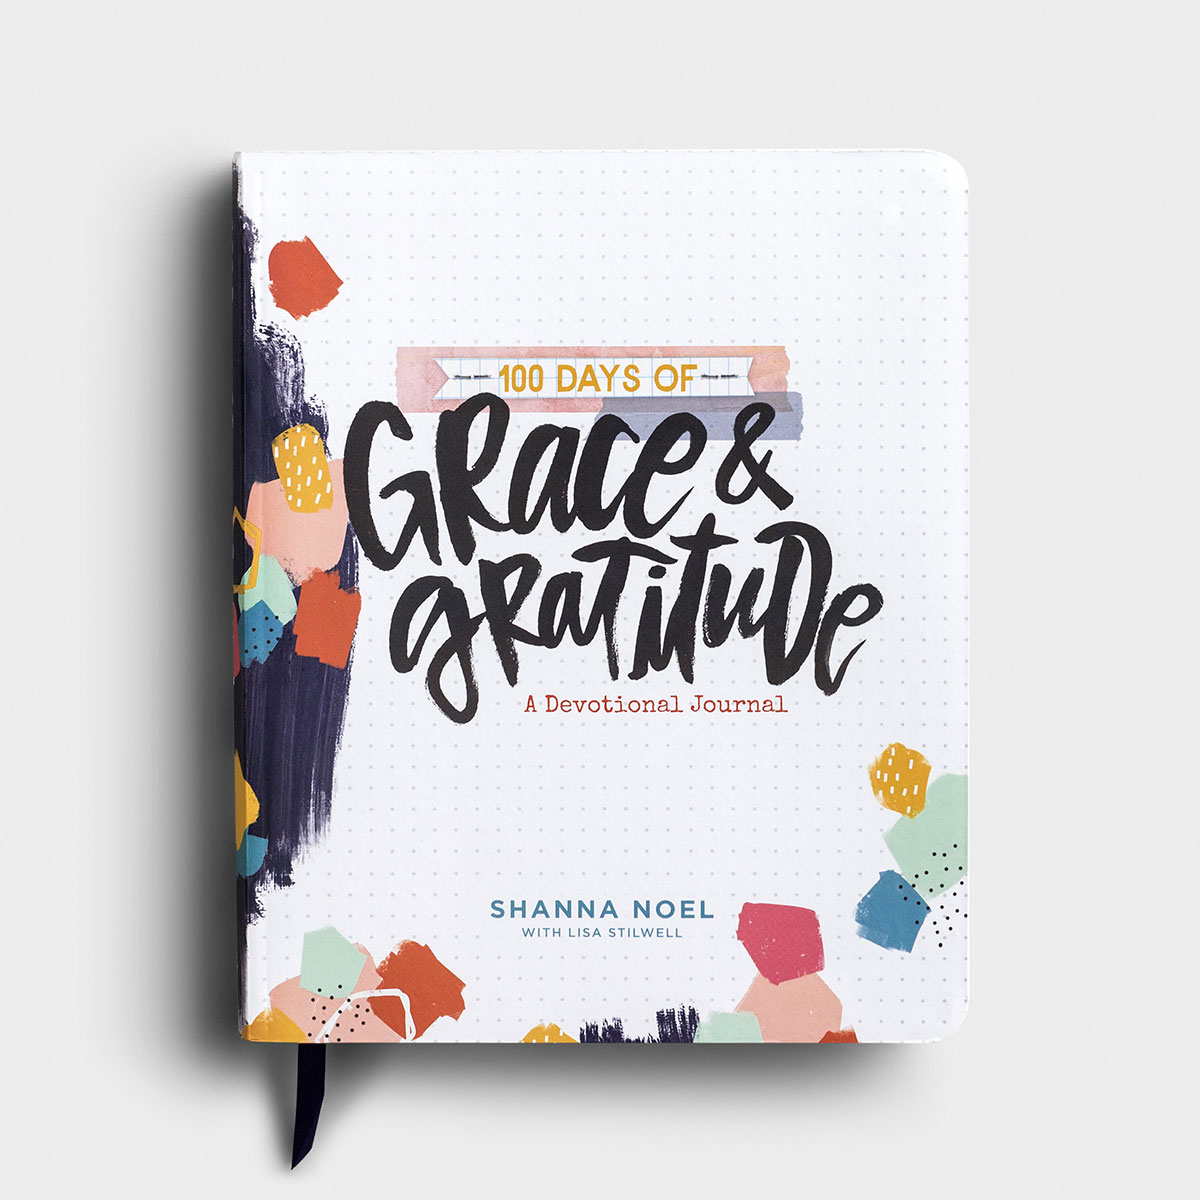 Shanna Noel - 100 Days of Grace & Gratitude - Devotional Journal